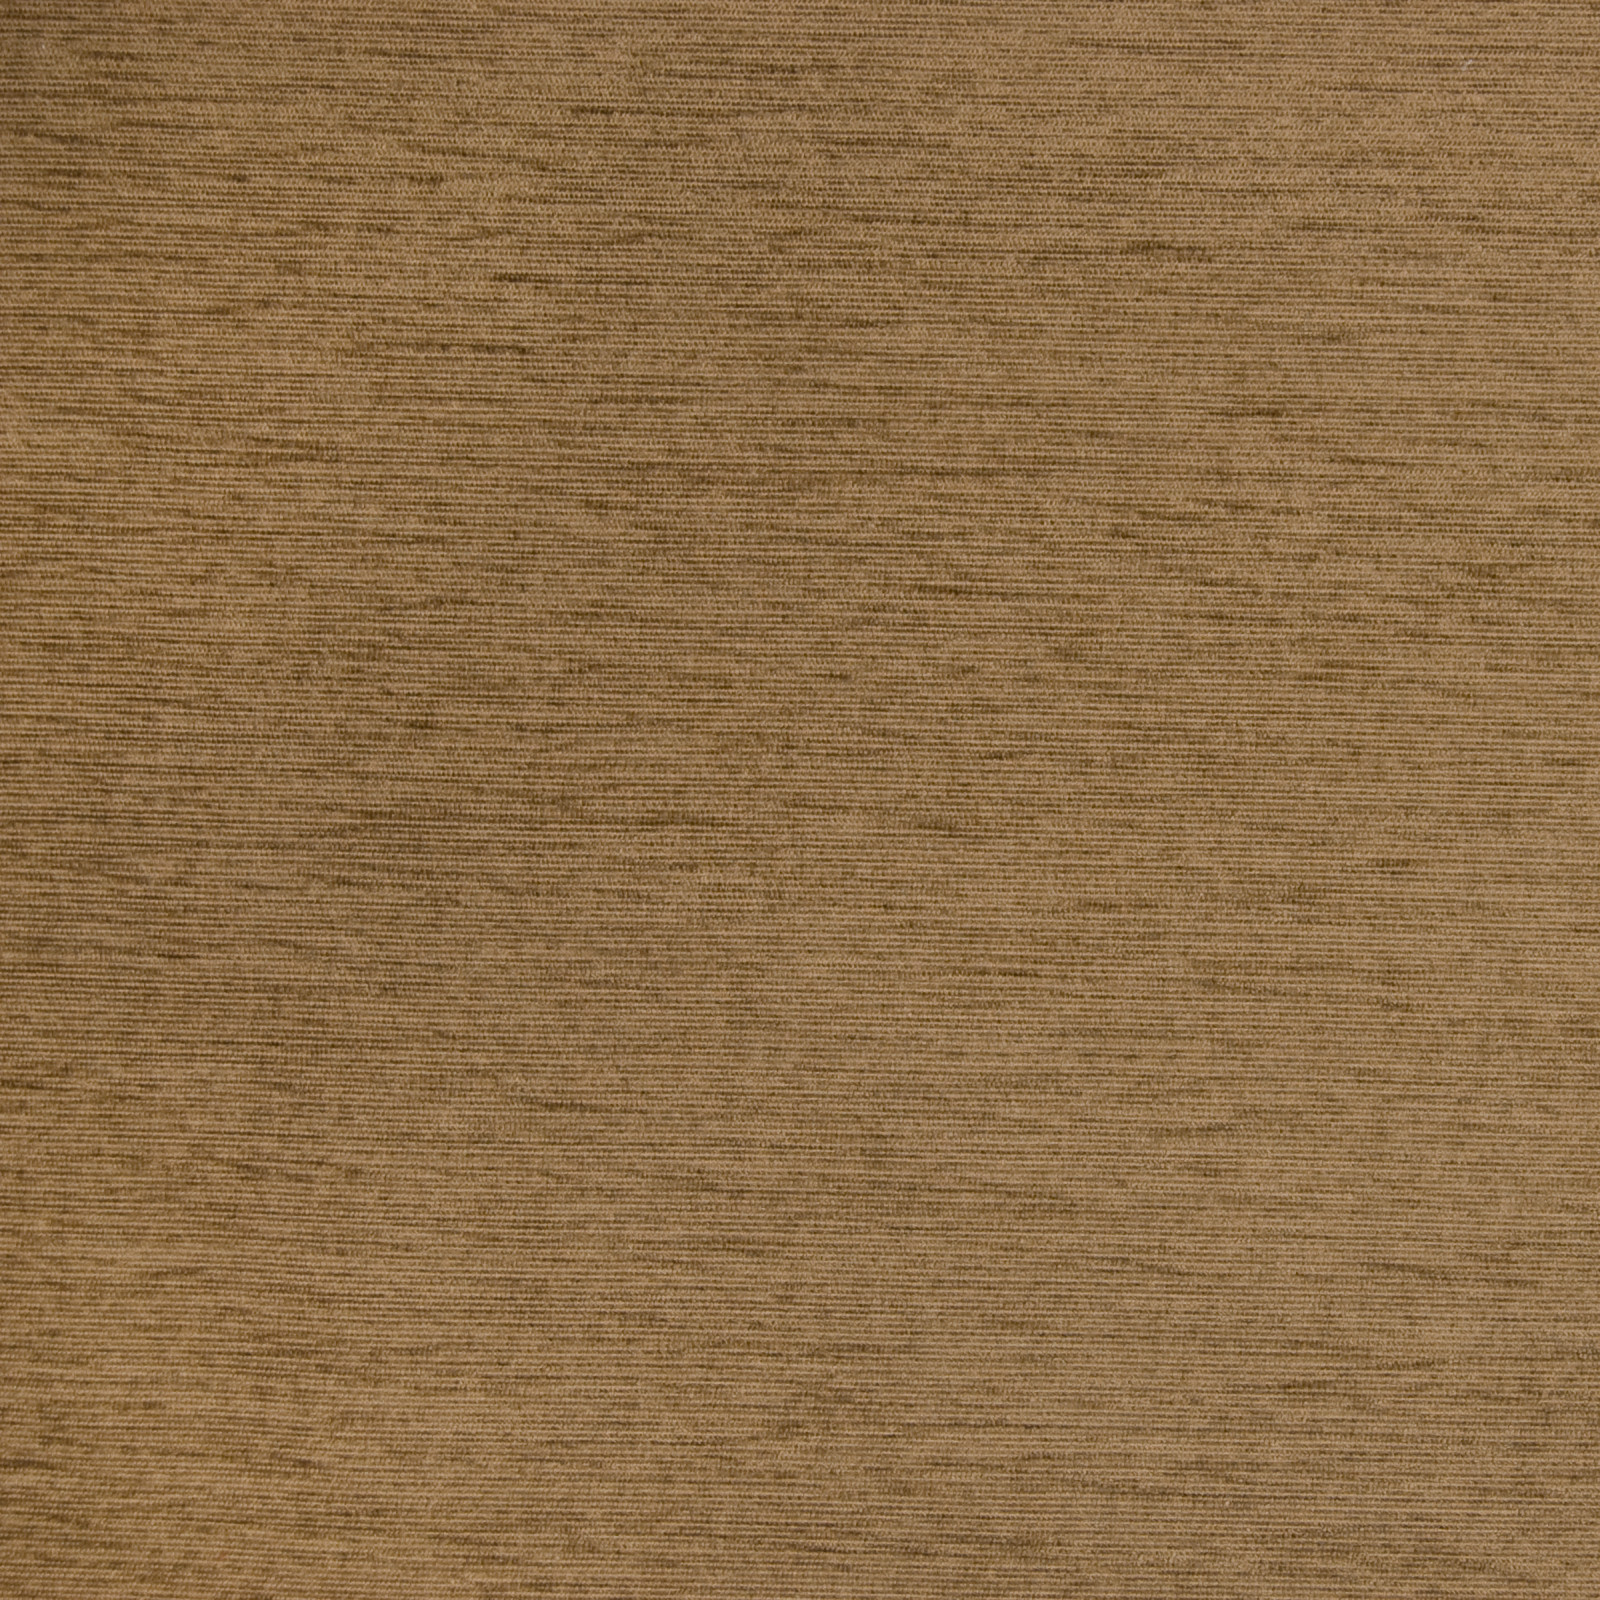 Sable Brown And Neutral Solid Velvet Upholstery Fabric